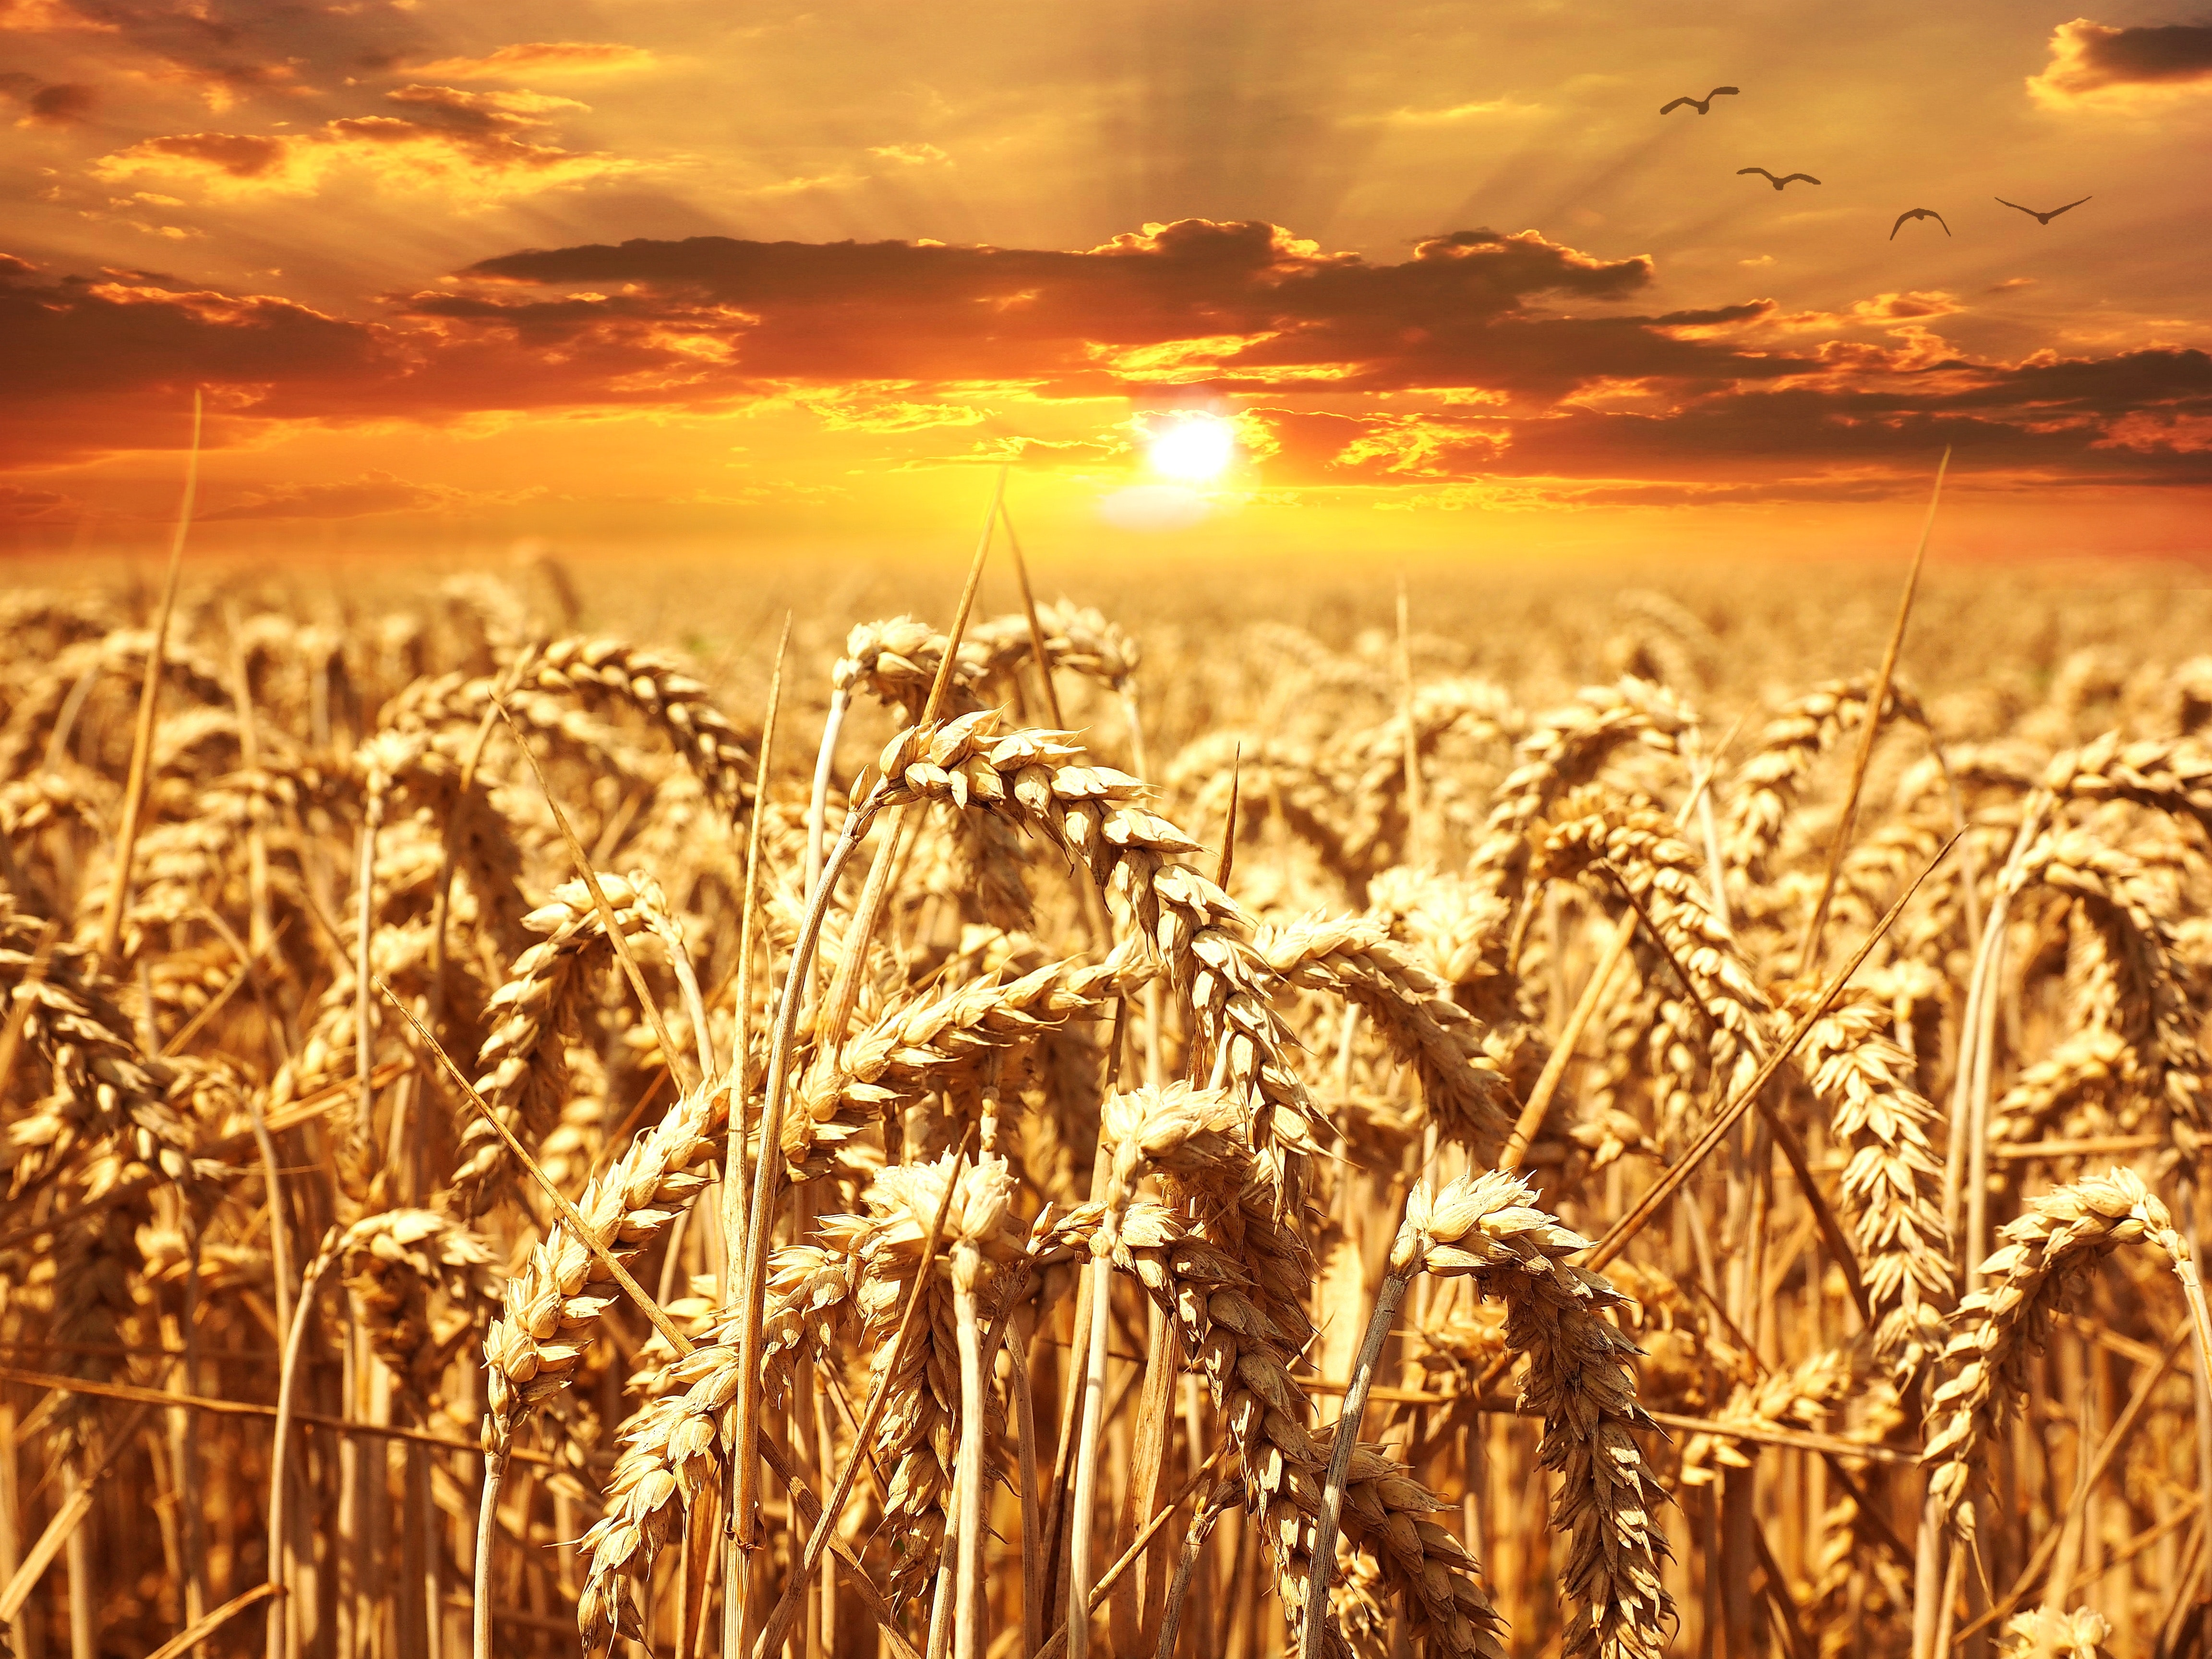 sunset-cereals-grain-lighting-39015.jpg